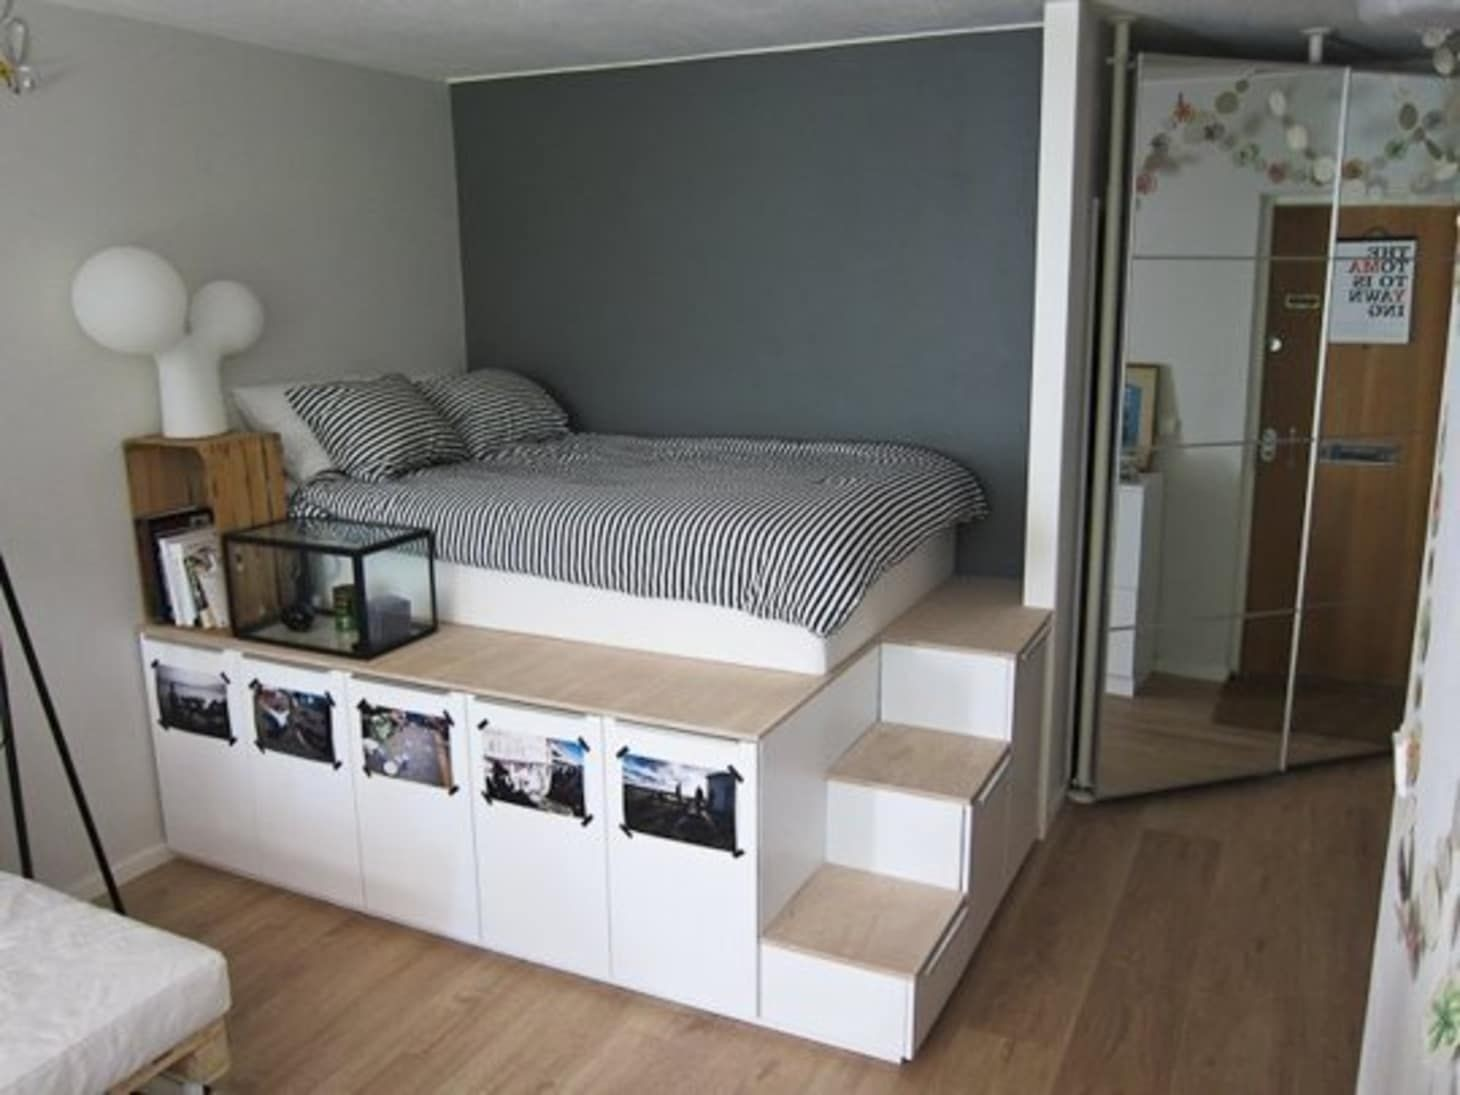 Loft bed with dresser underneath 3